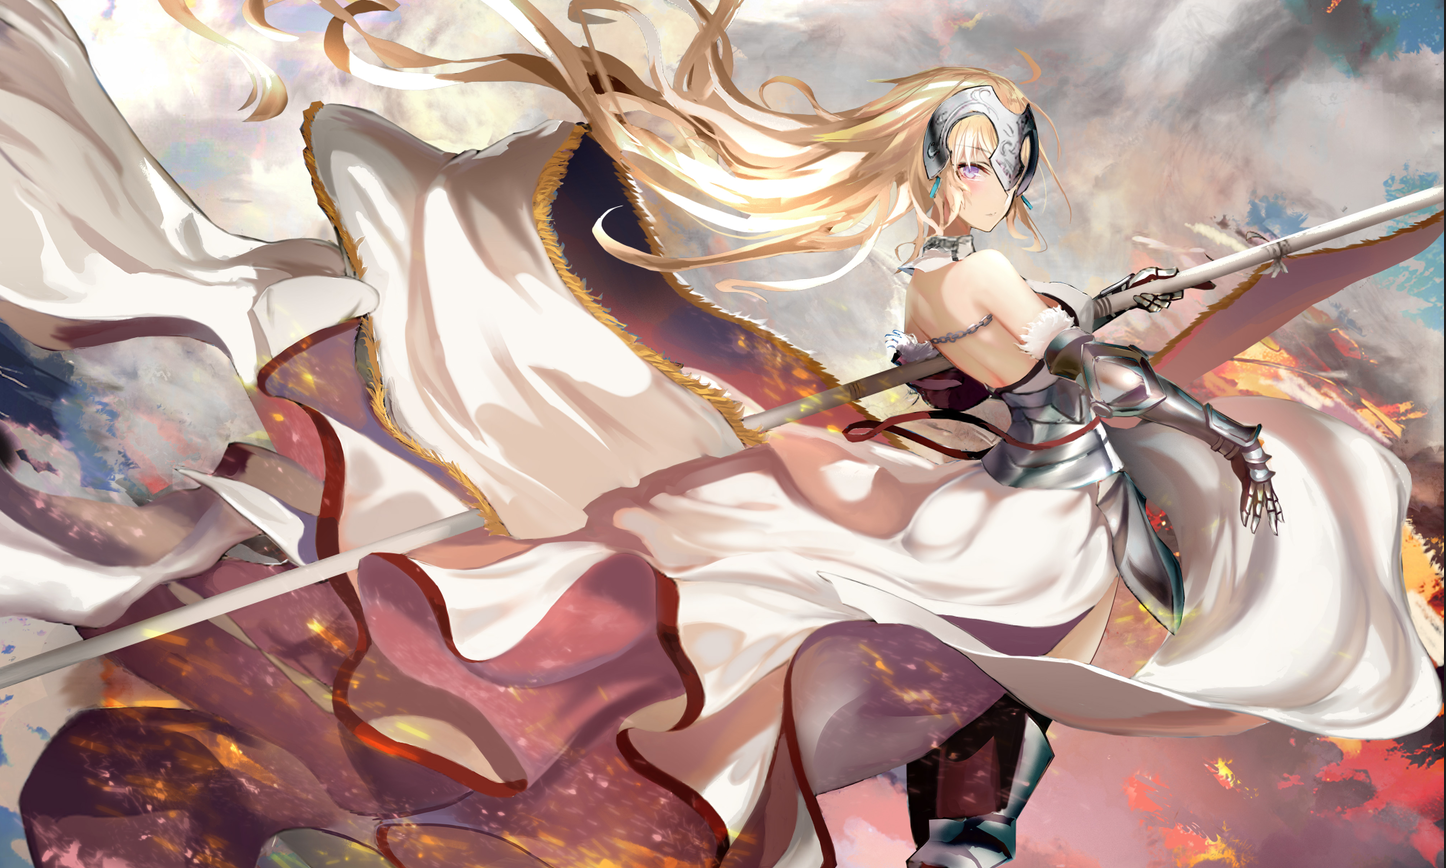 anime girls fantasy armor blond hair digital art fate/grand order fate series fate/apocrypha  big boobs jeanne d'arc (fate) ruler (fate/apocrypha) long hair fantasy weapon